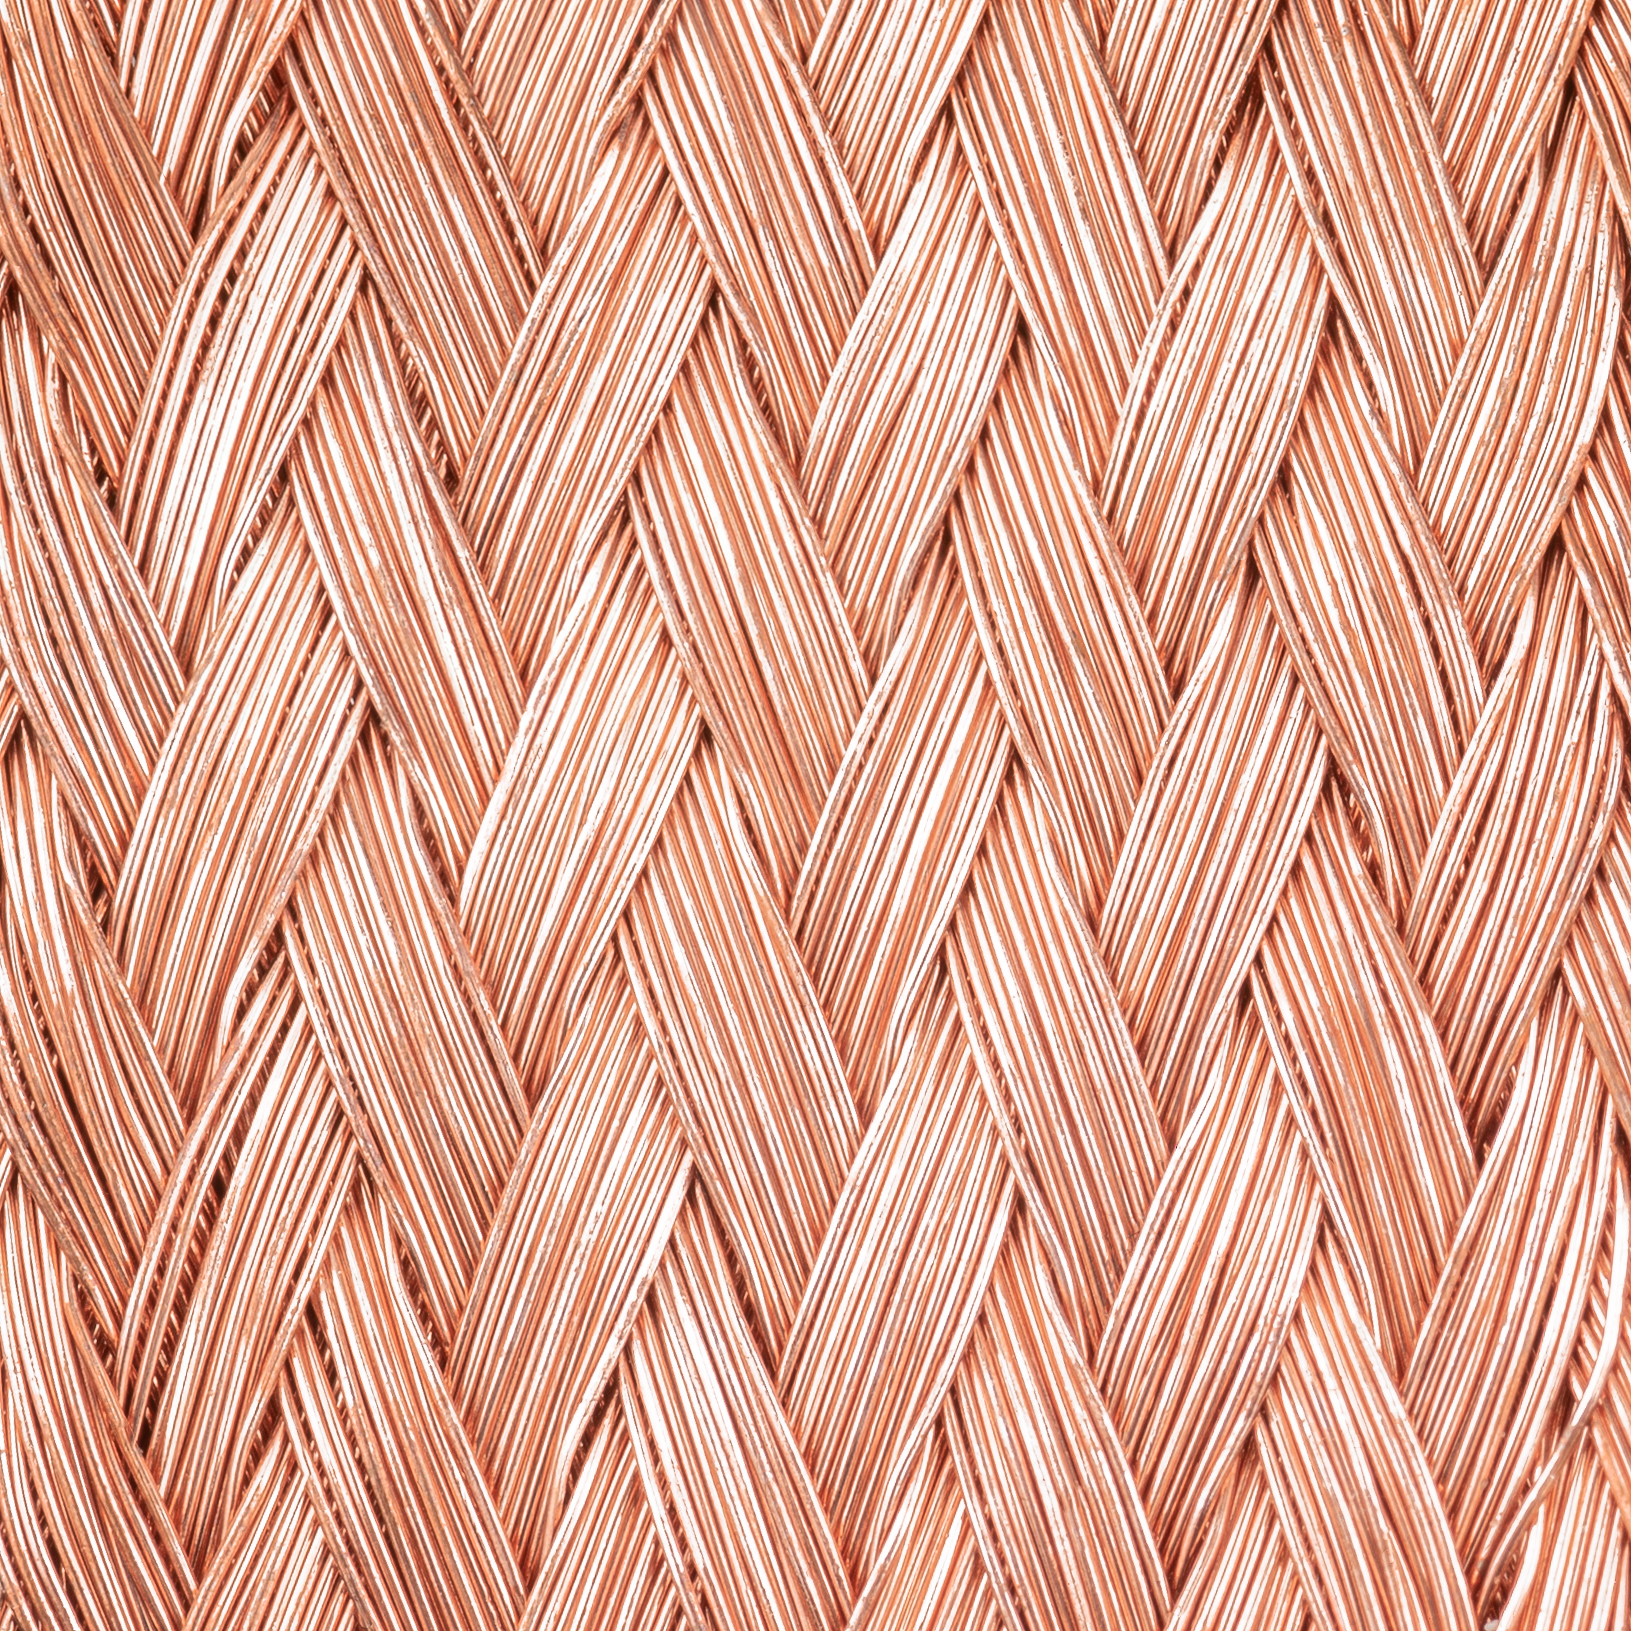 Copperbraid closeup